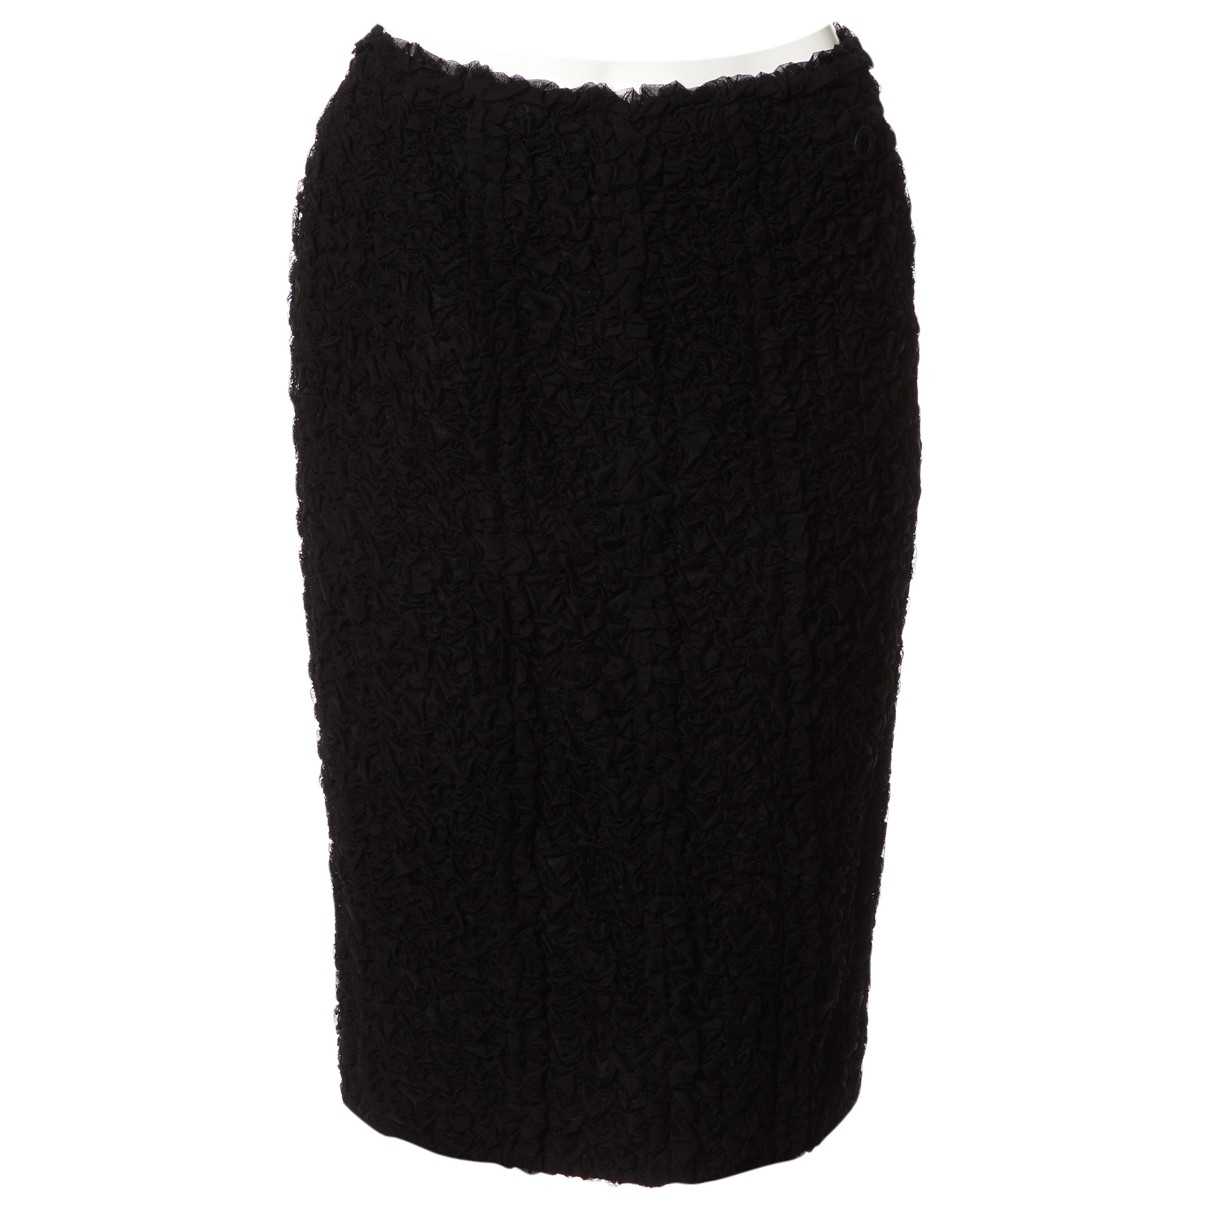 Chanel \N Black skirt for Women 36 FR